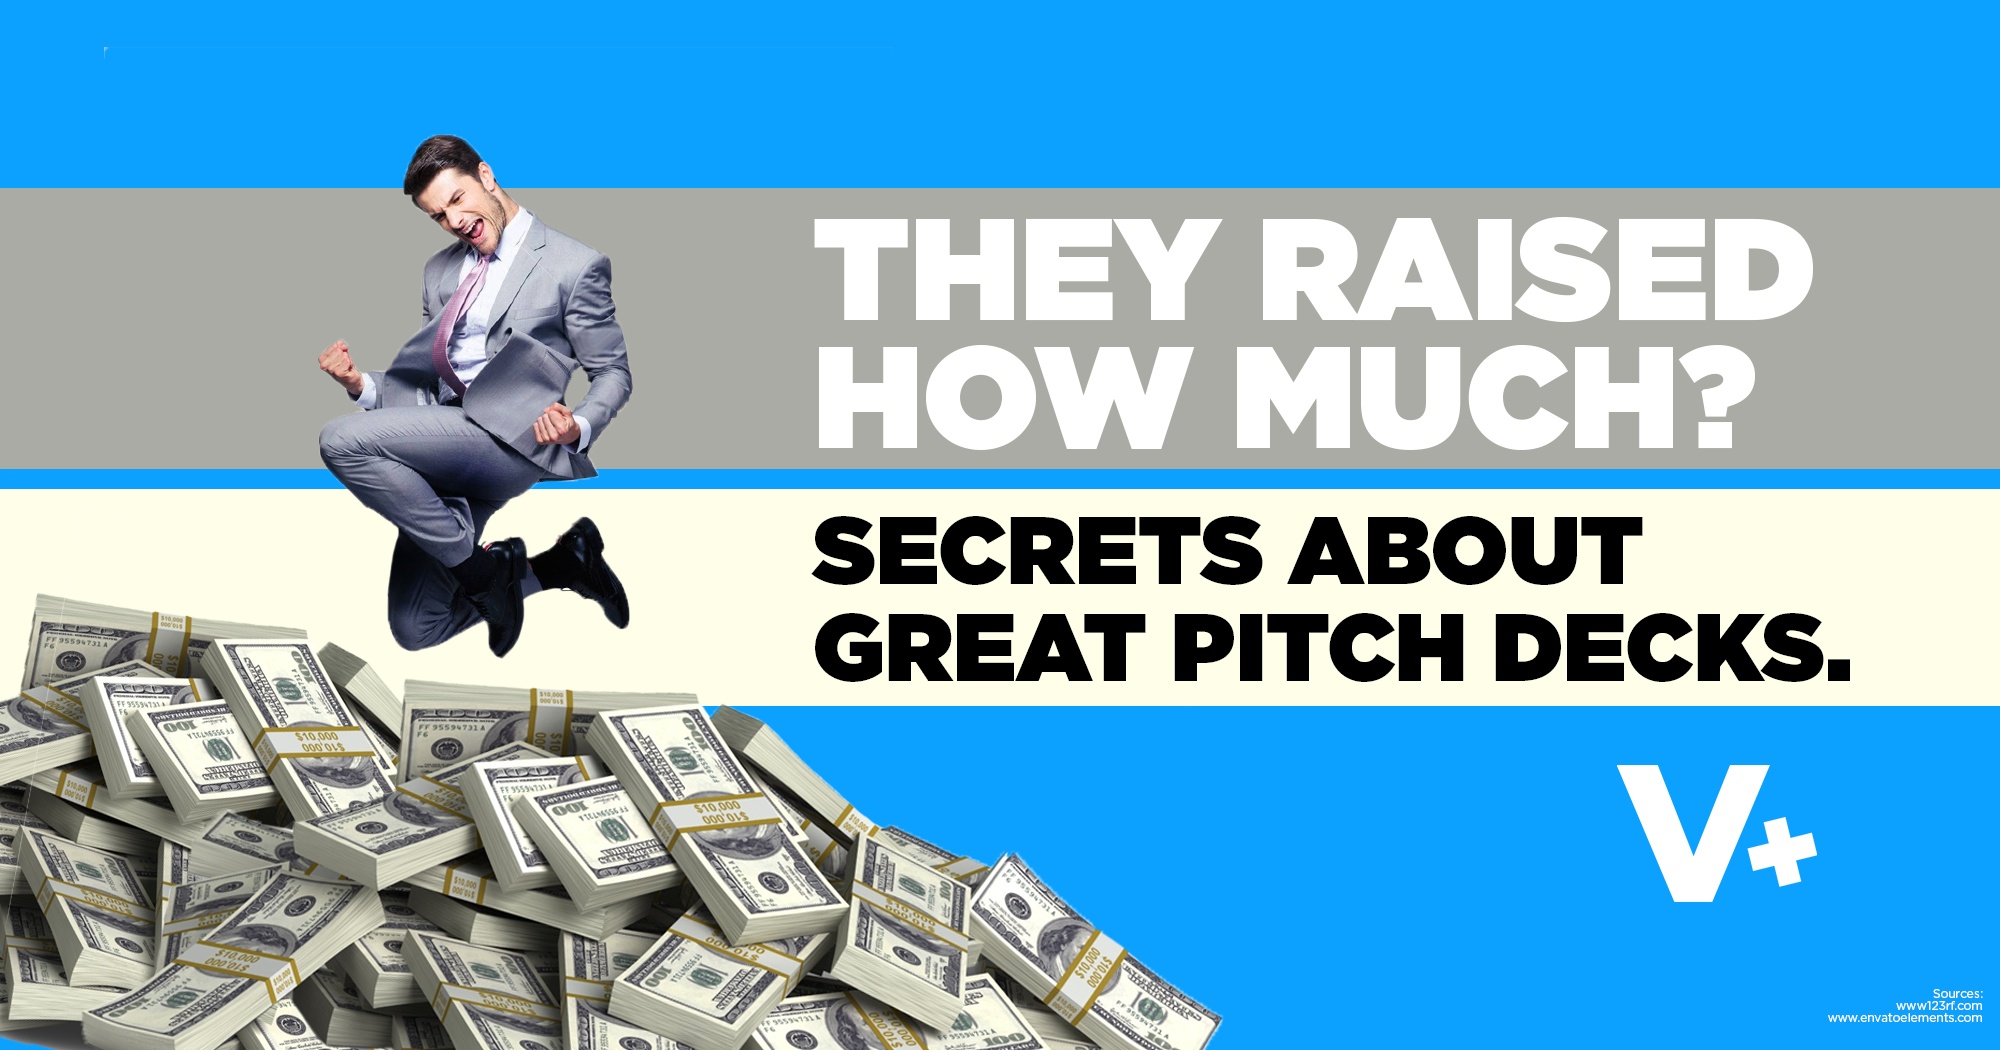 They Raised How Much? Secrets About Great Pitch Decks